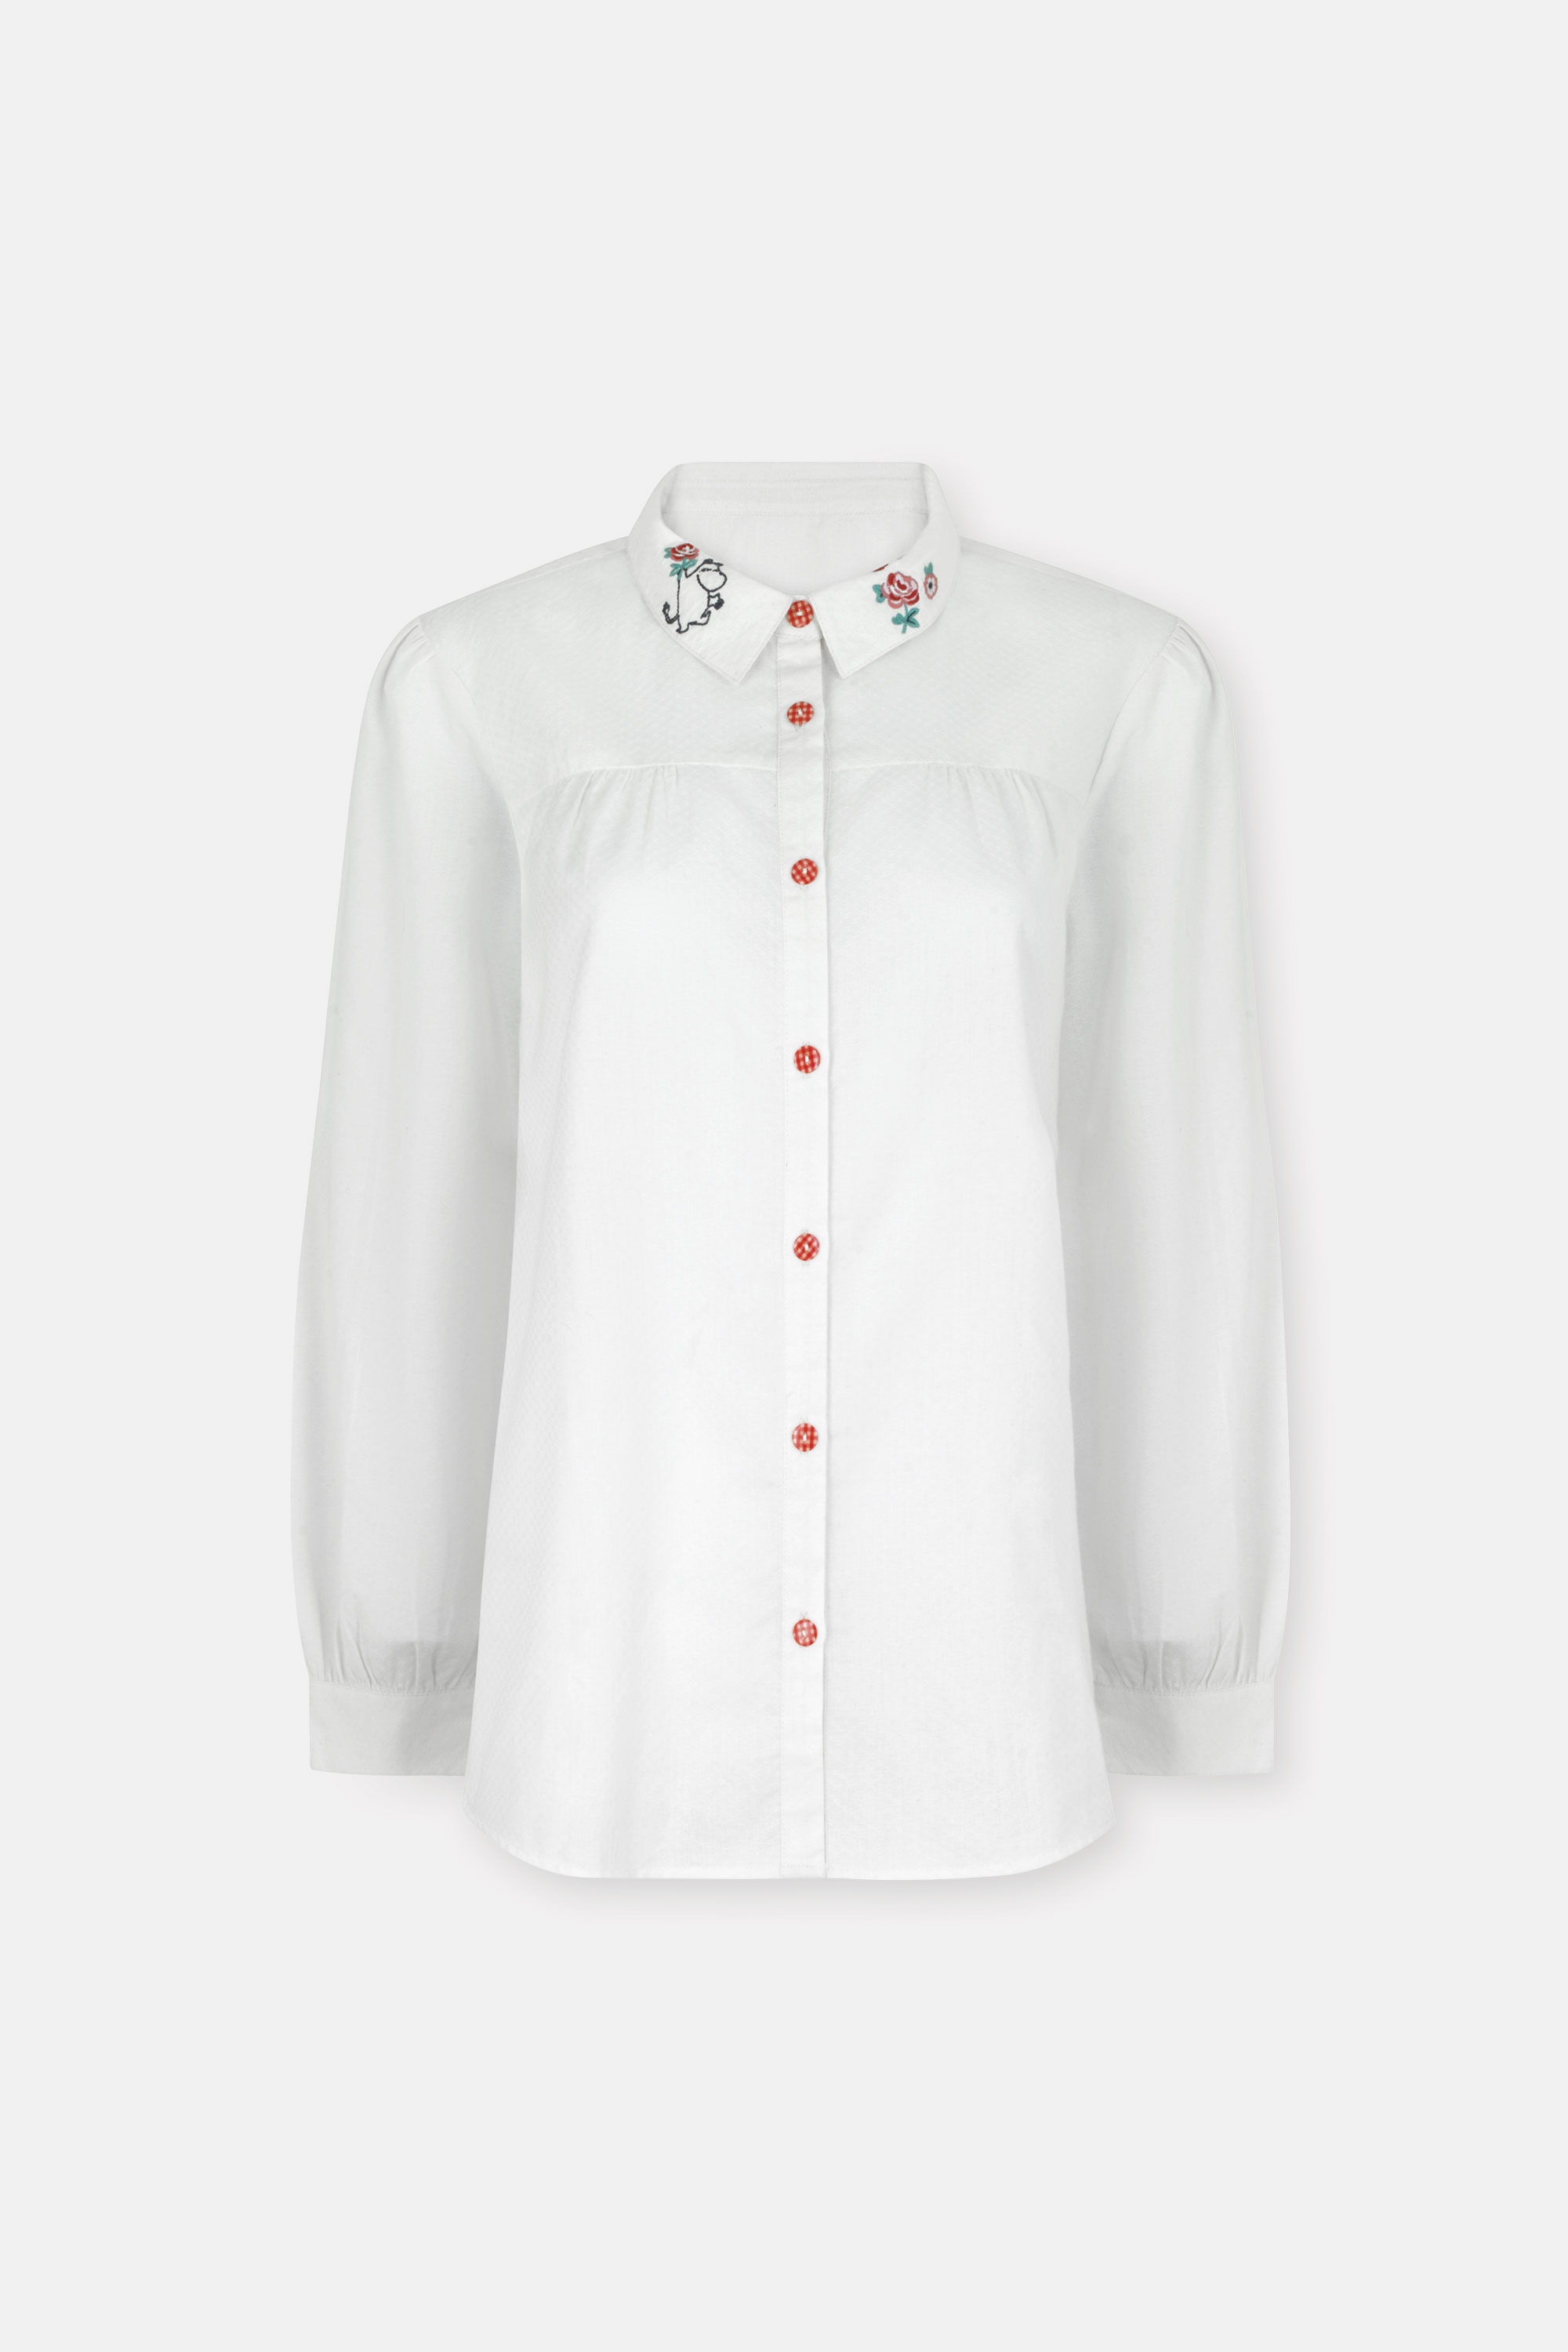 Cath Kidston Moomin Embroidered Collar New Classic Shirt in Off White, 18